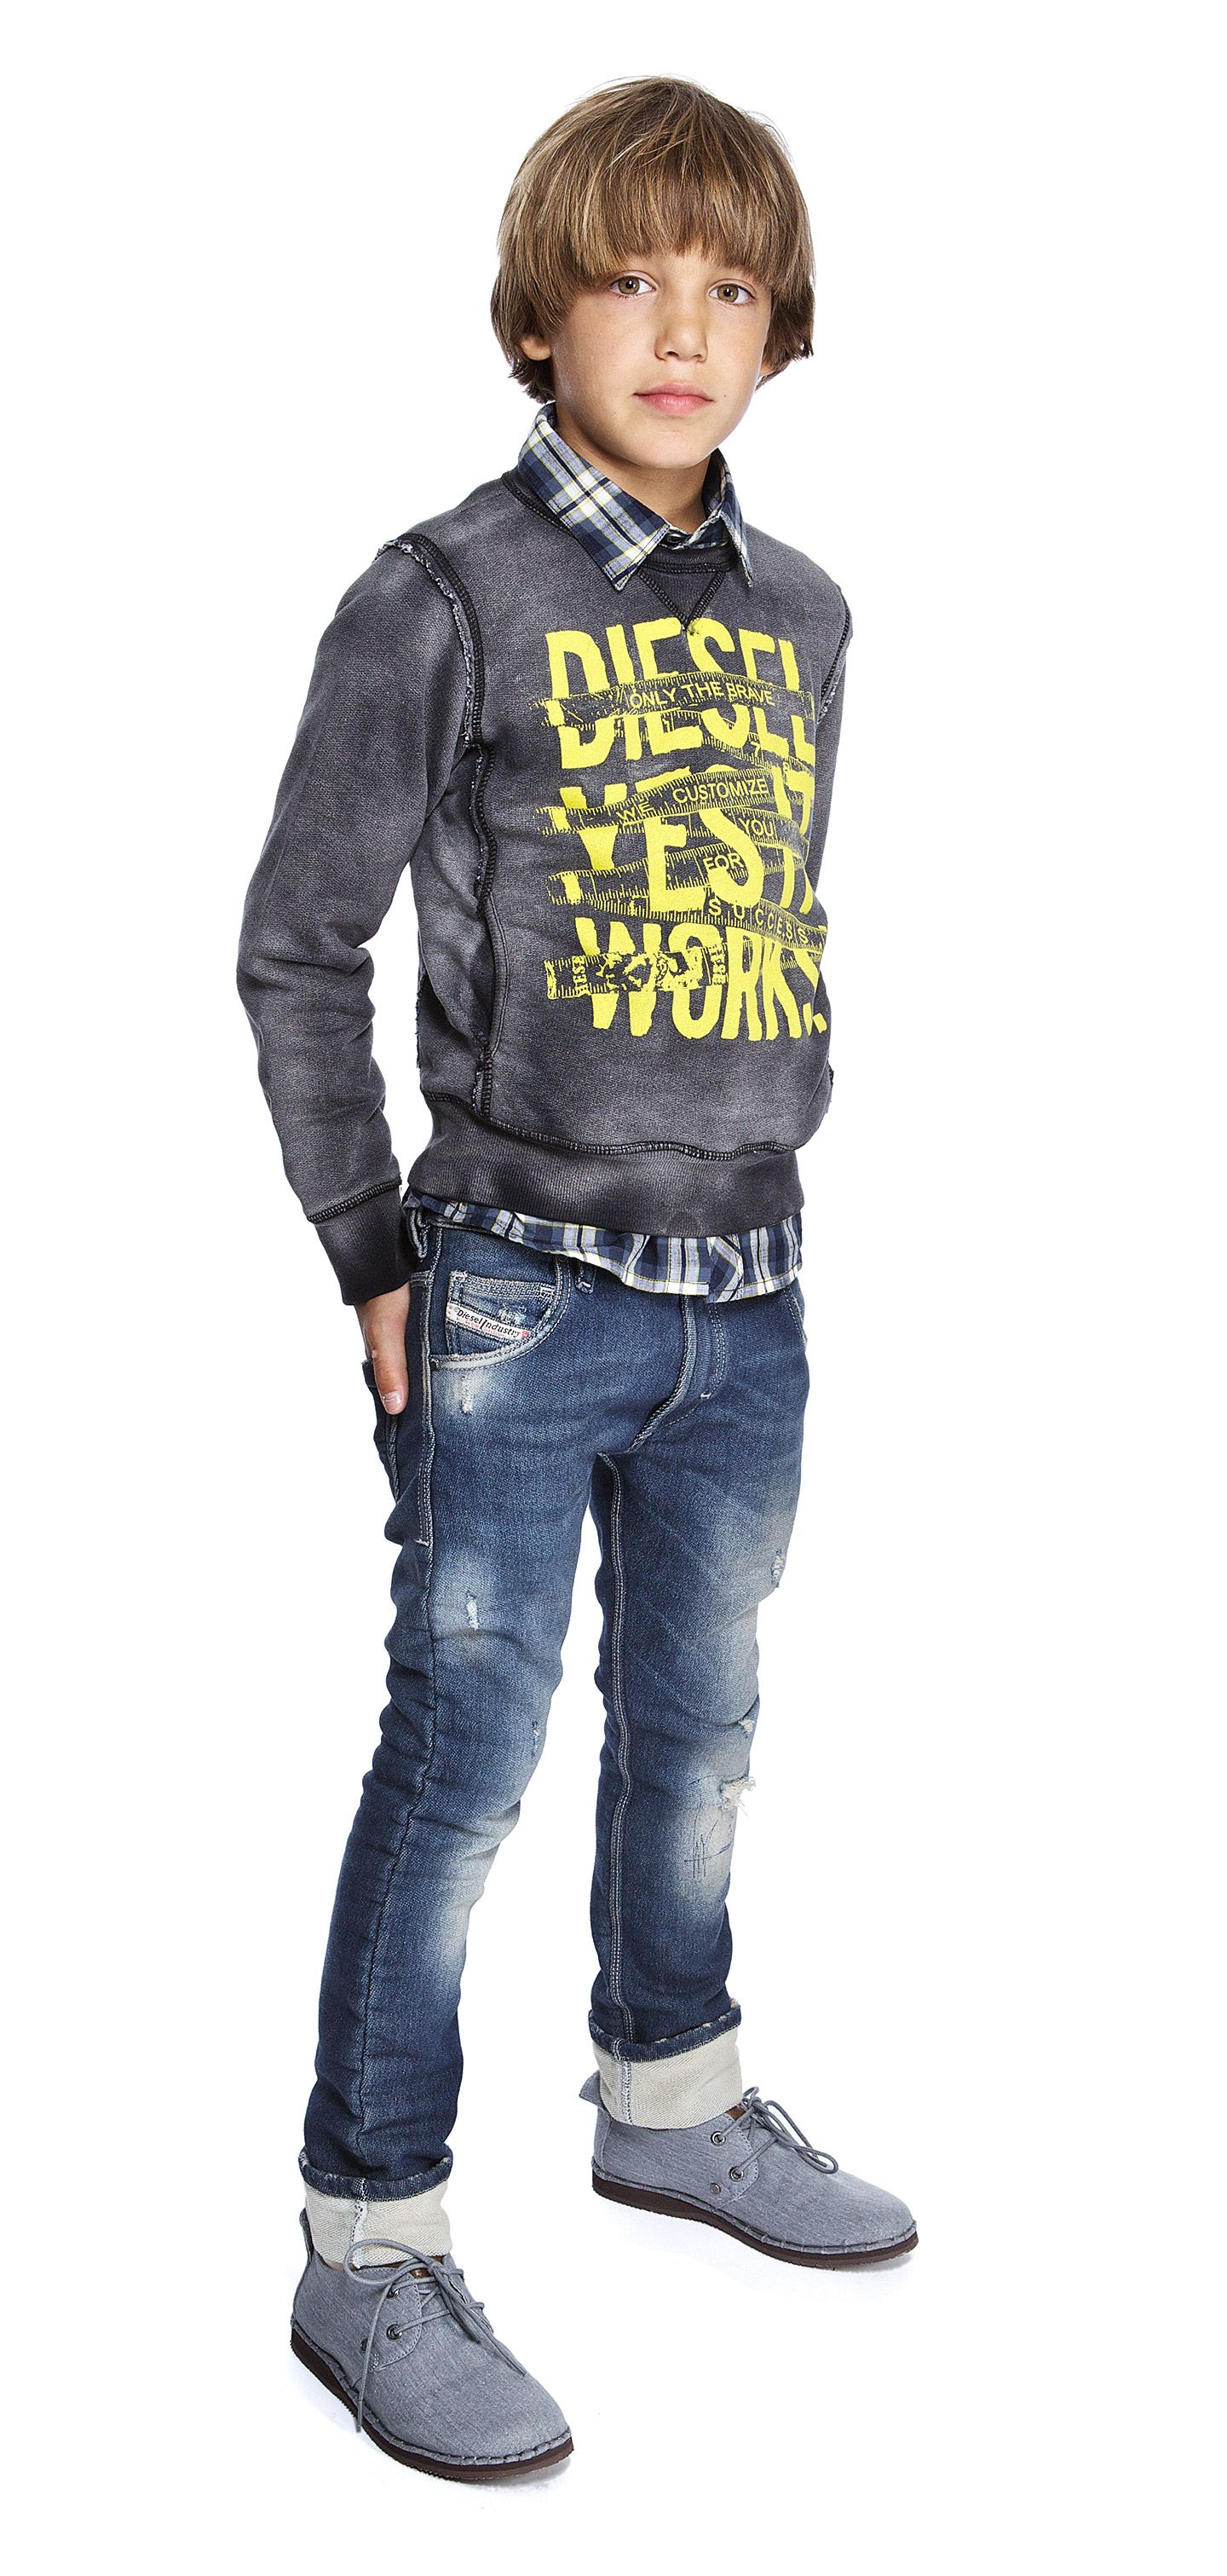 Diesel Collection Cool Casual Look Little Fashion Pinterest Workwear Diesel And Boy